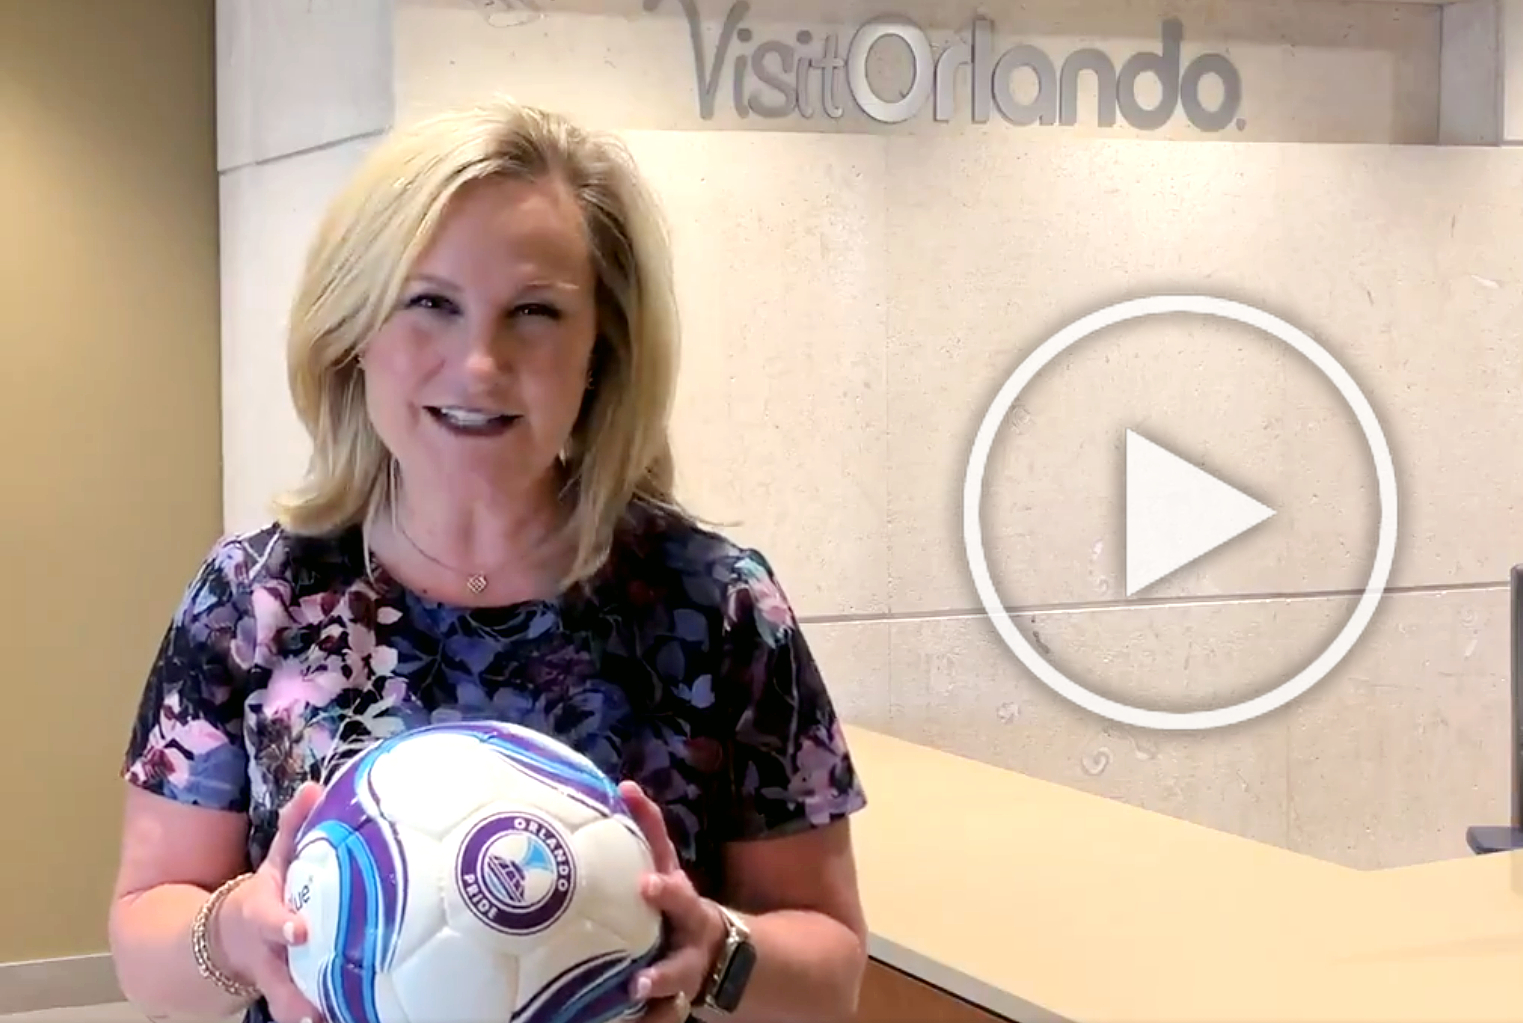 Visit Orlando president and CEO Casandra Matej joins in a challenge to #riseup and show the world that Orlando deserves to be a World Cup city once more